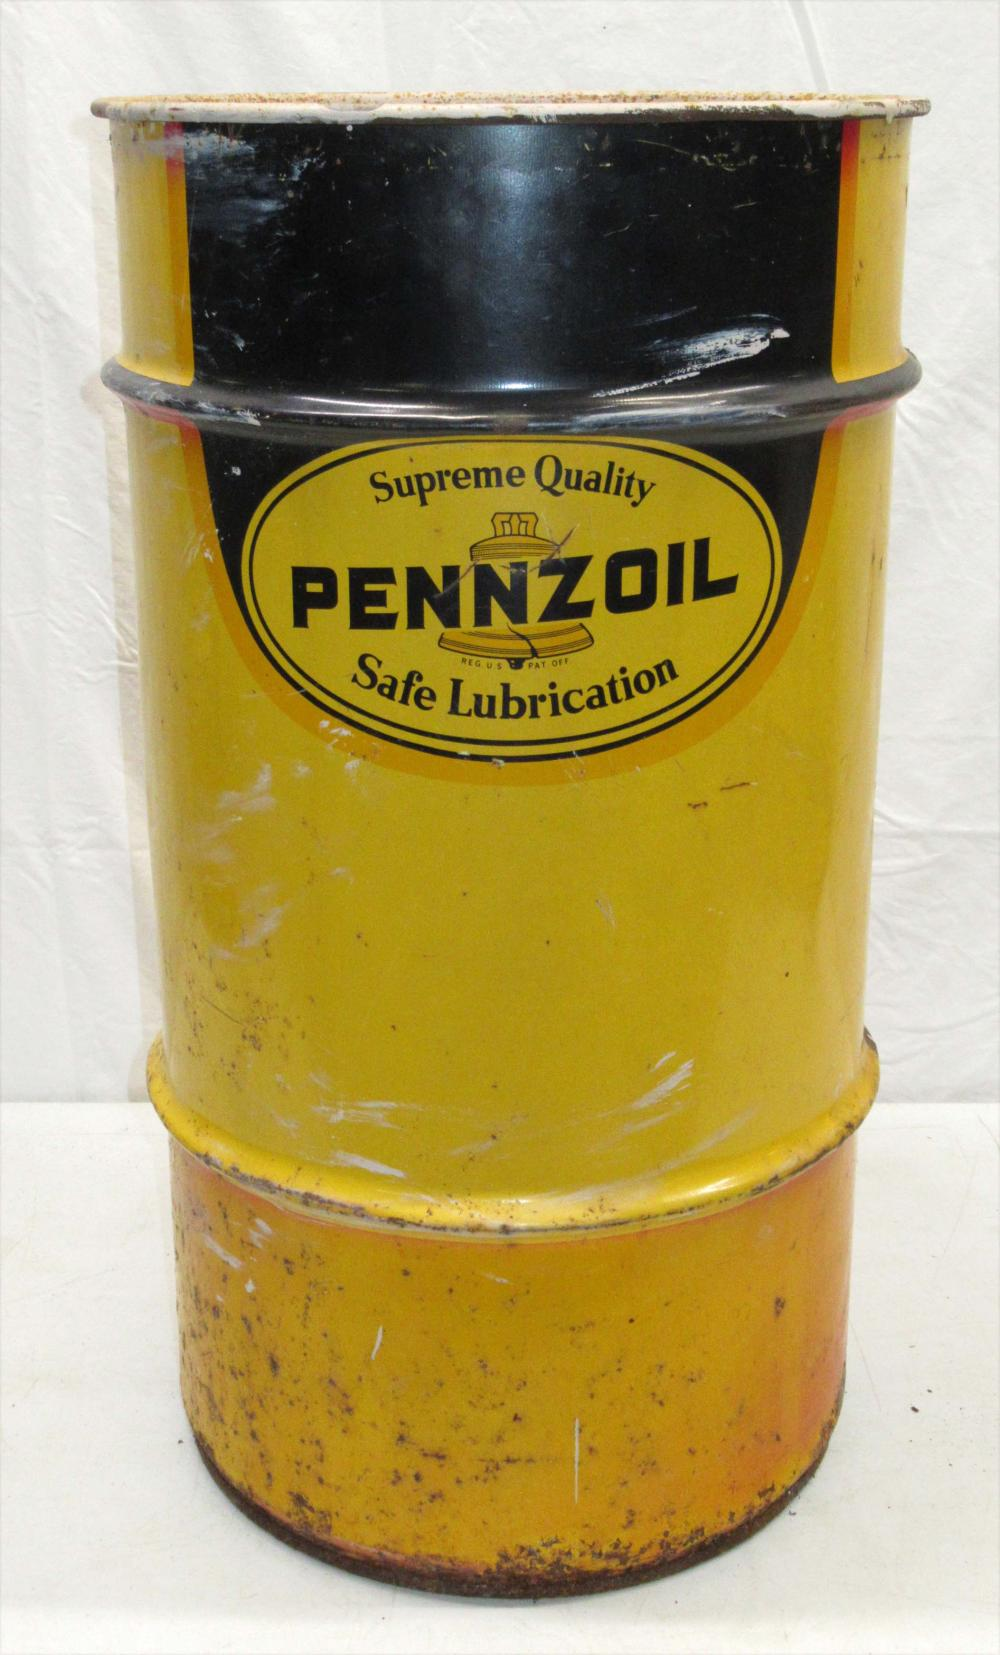 Pennzoil Lubrication Barrel